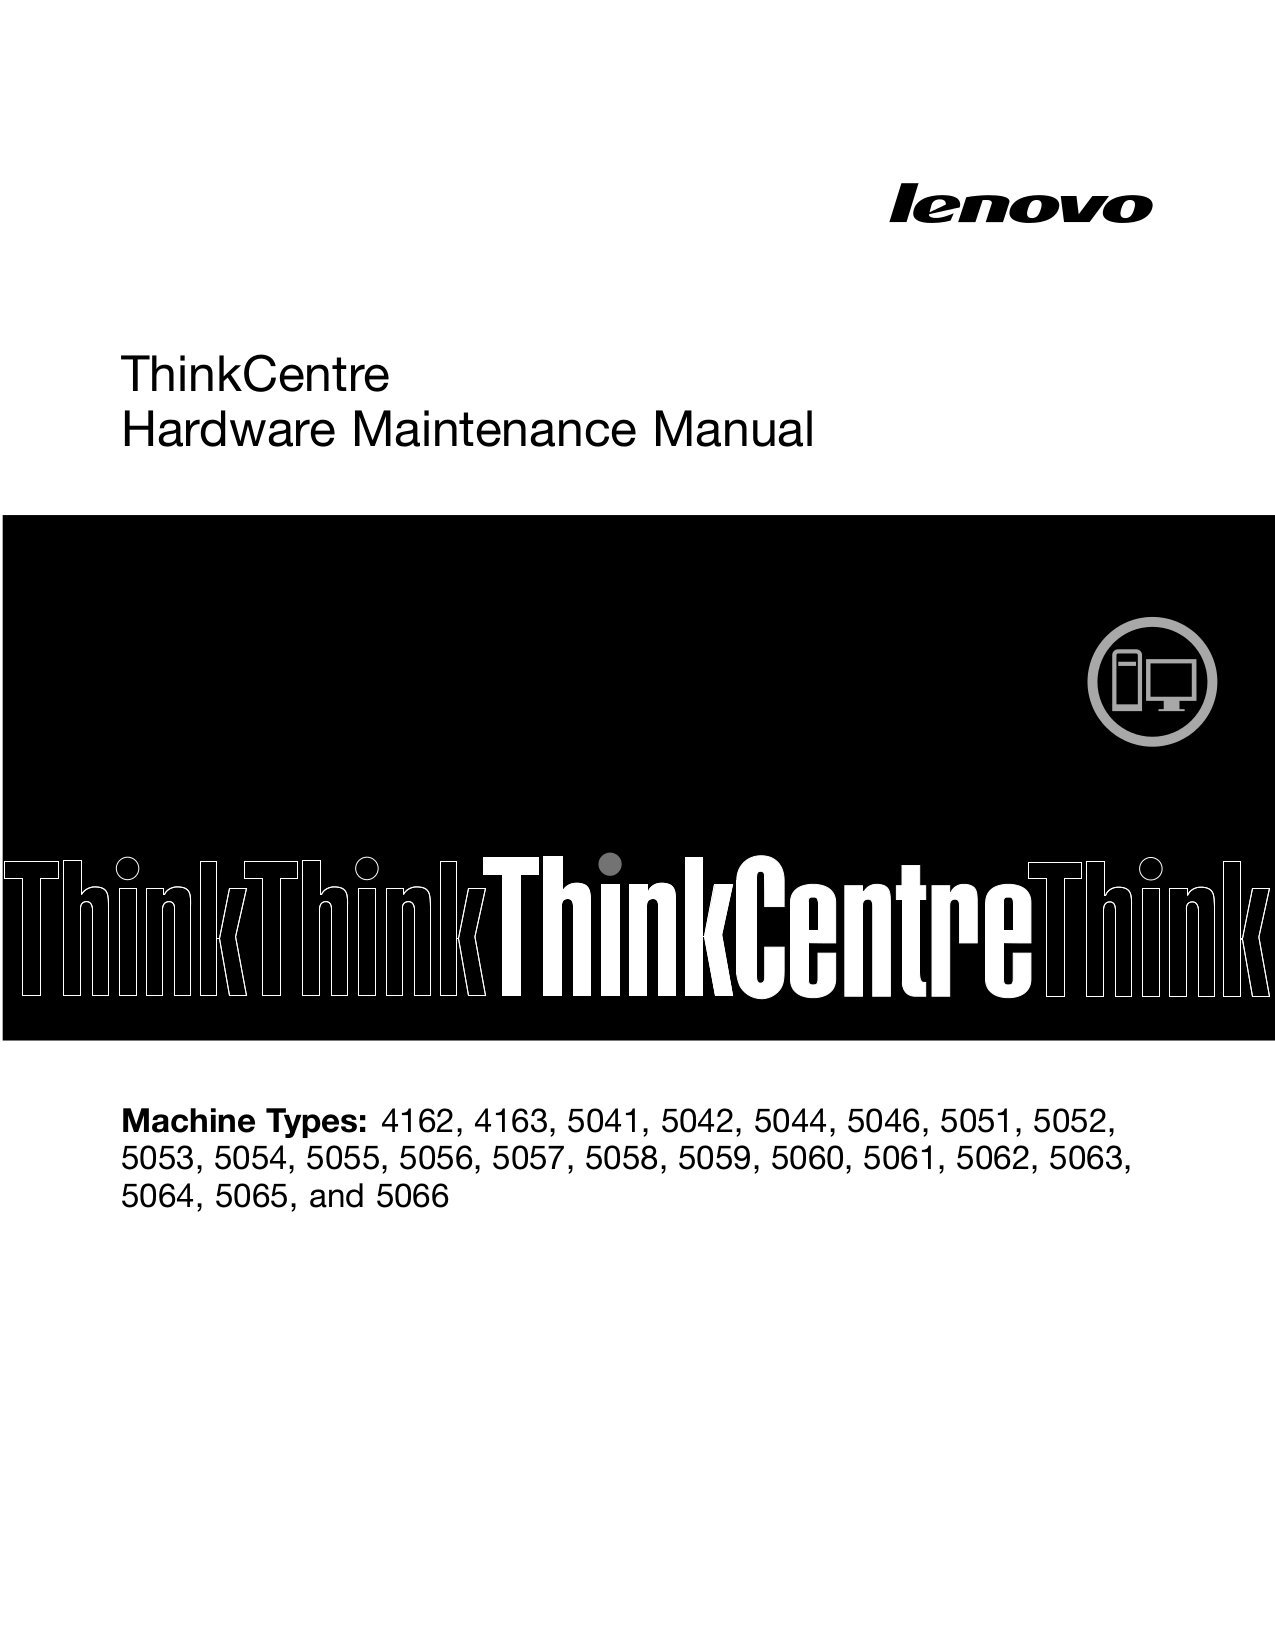 pdf for Lenovo Desktop ThinkCentre M75e 5062 manual